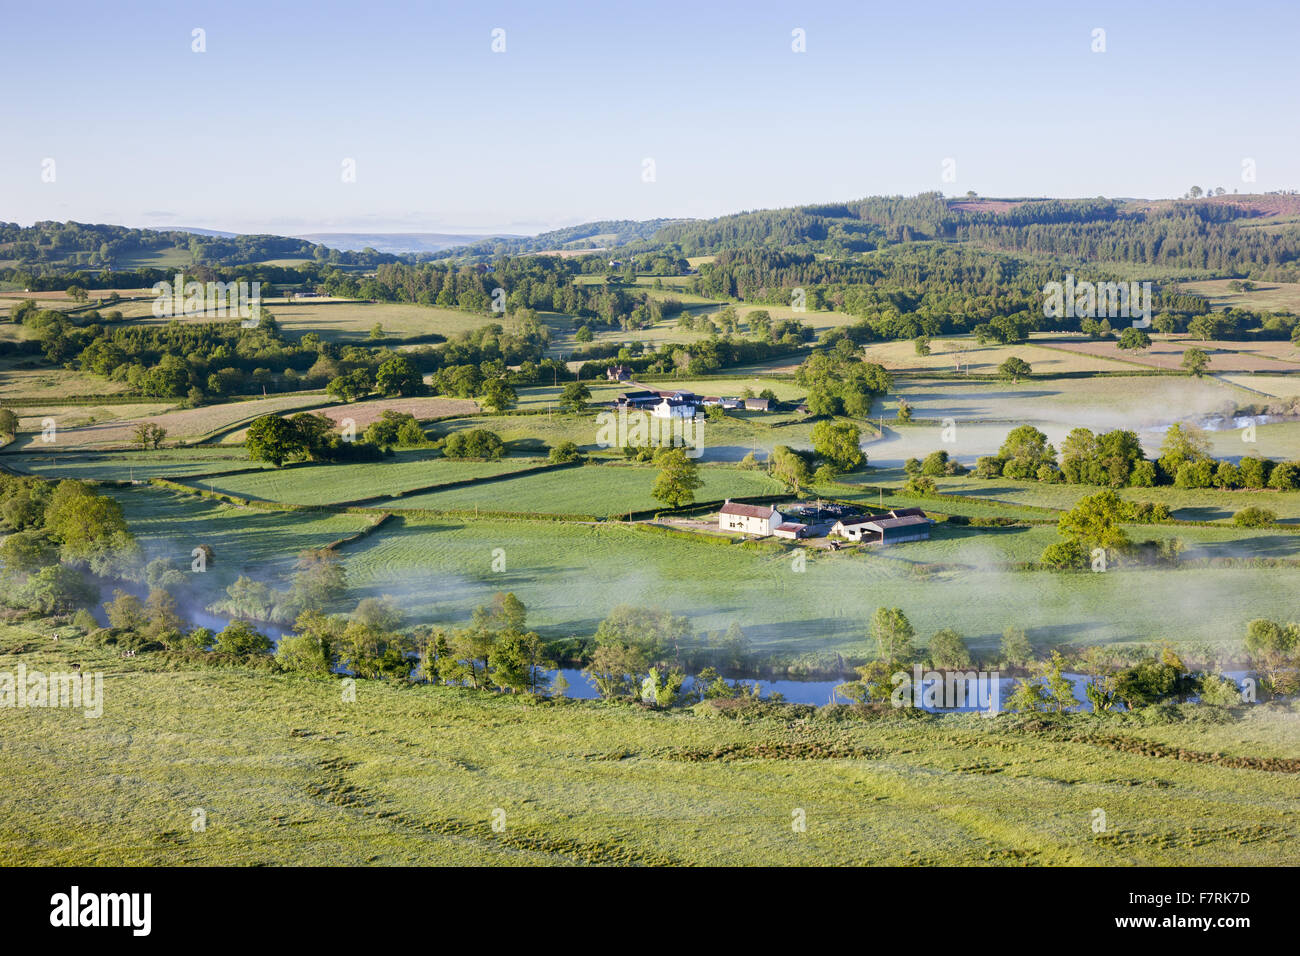 View from the castle towards the River Towy at Dinefwr, Carmarthenshire, Wales. Dinefwr is a National Nature Reserve, - Stock Image